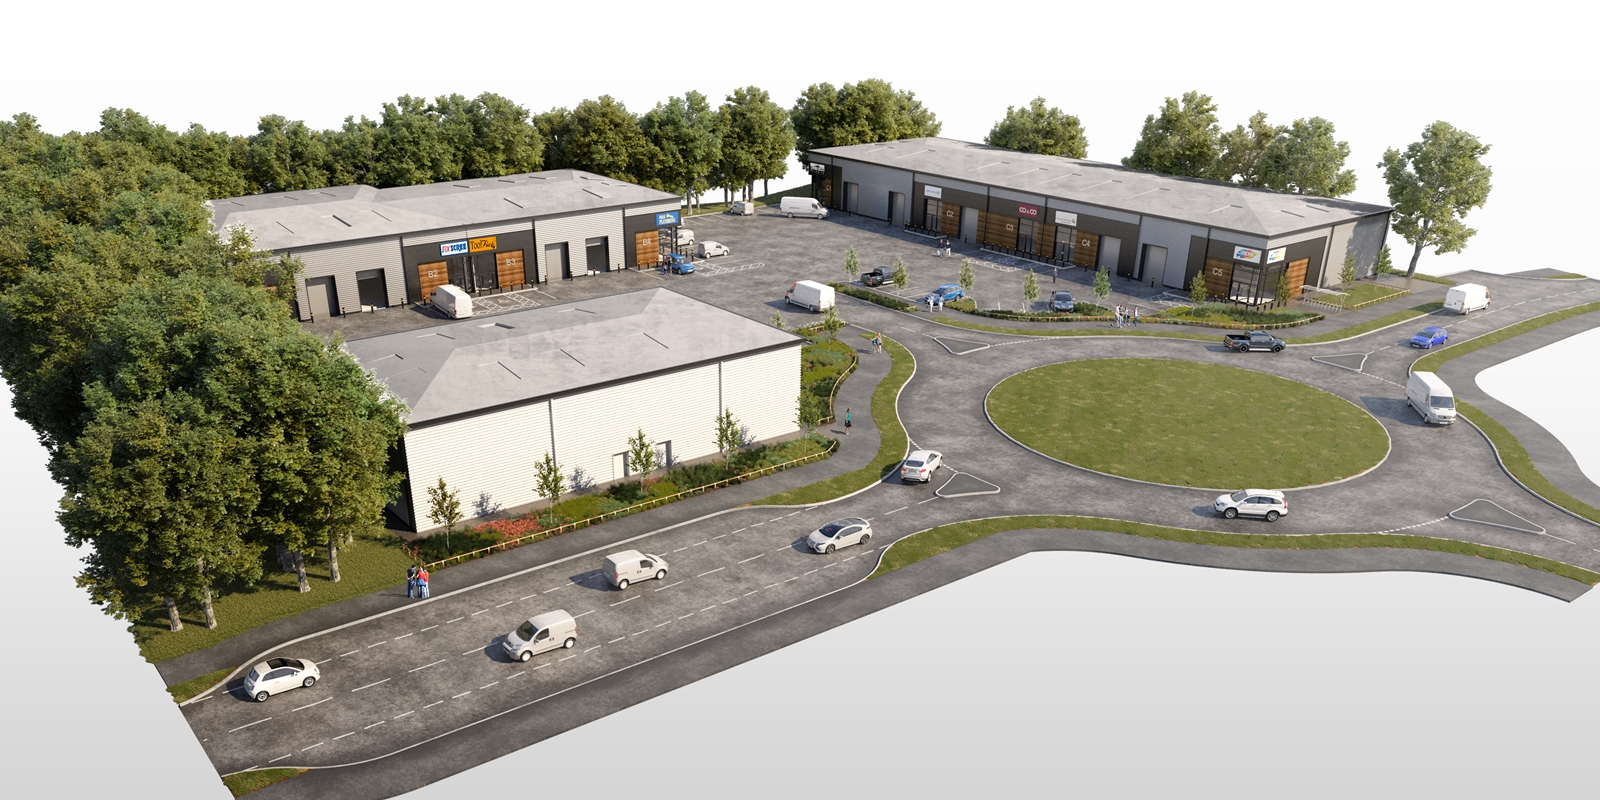 WORK STARTS ON MAJOR NEW INDUSTRIAL DEVELOPMENT ON FORMER COLLIERY SITE